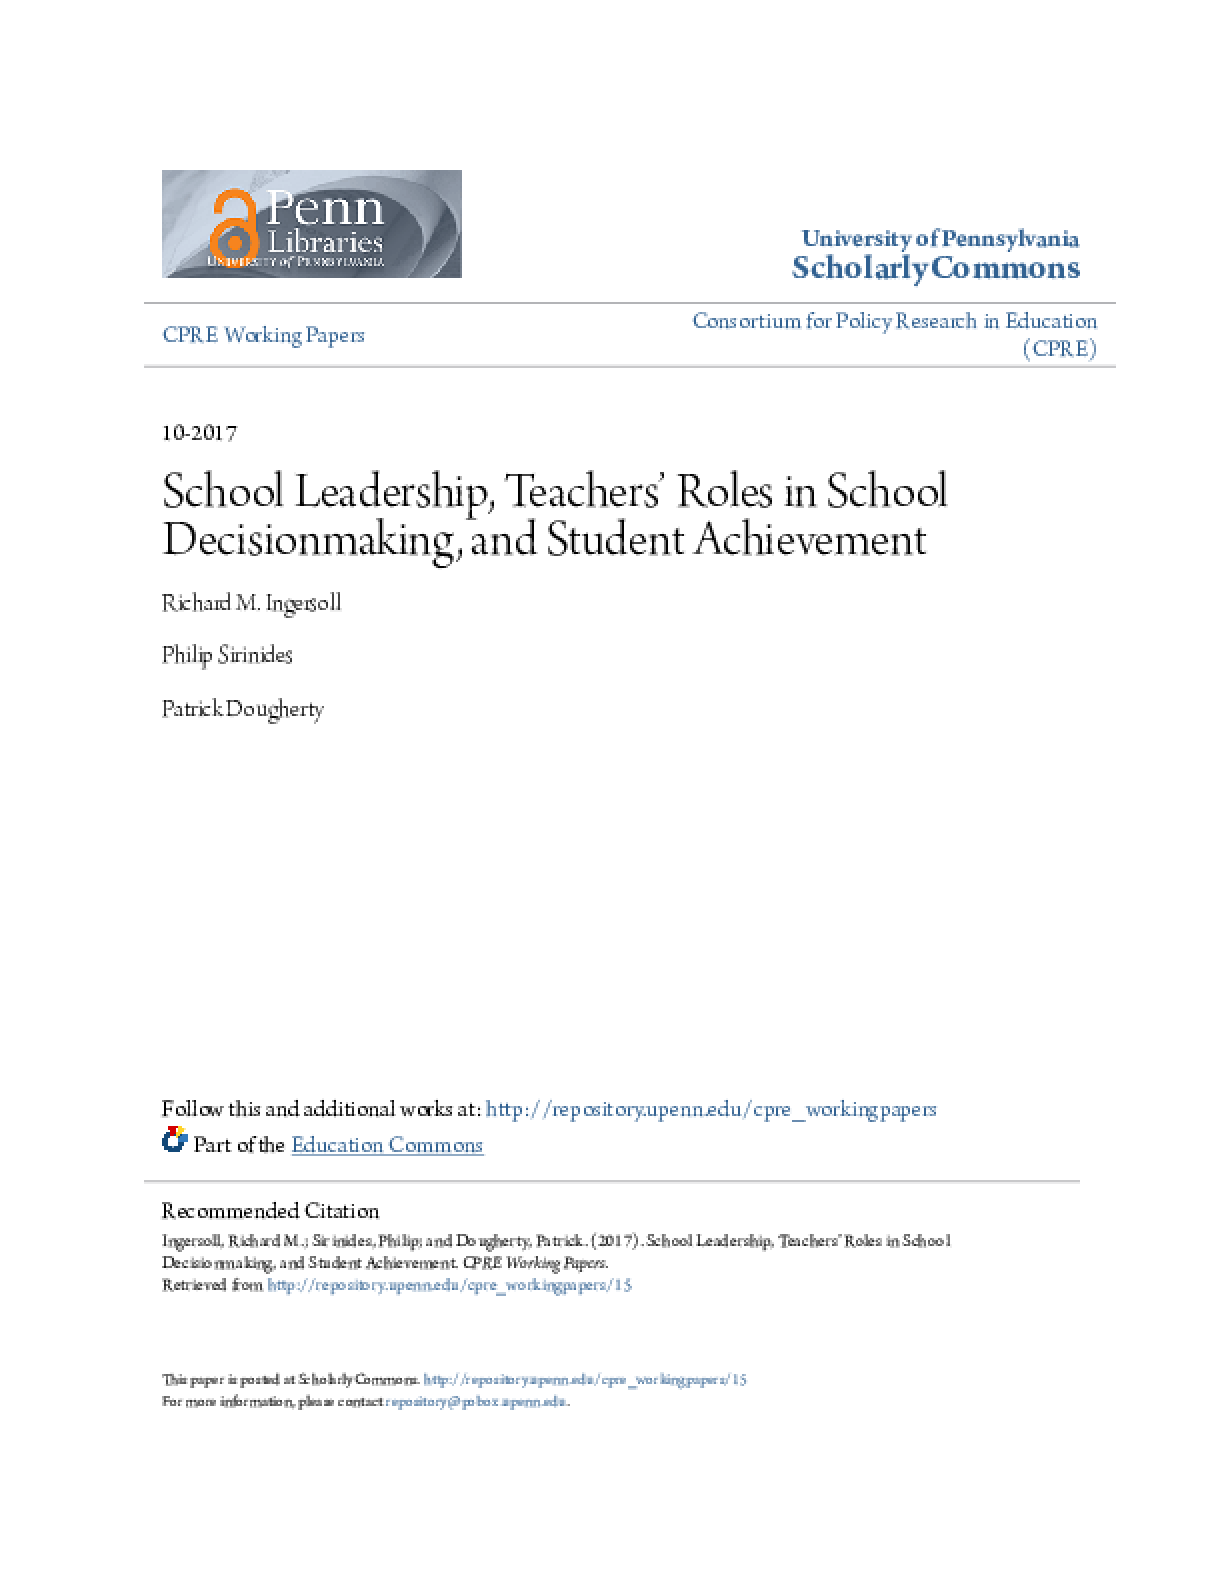 School Leadership, Teachers' Roles in School Decisionmaking, and Student Achievement